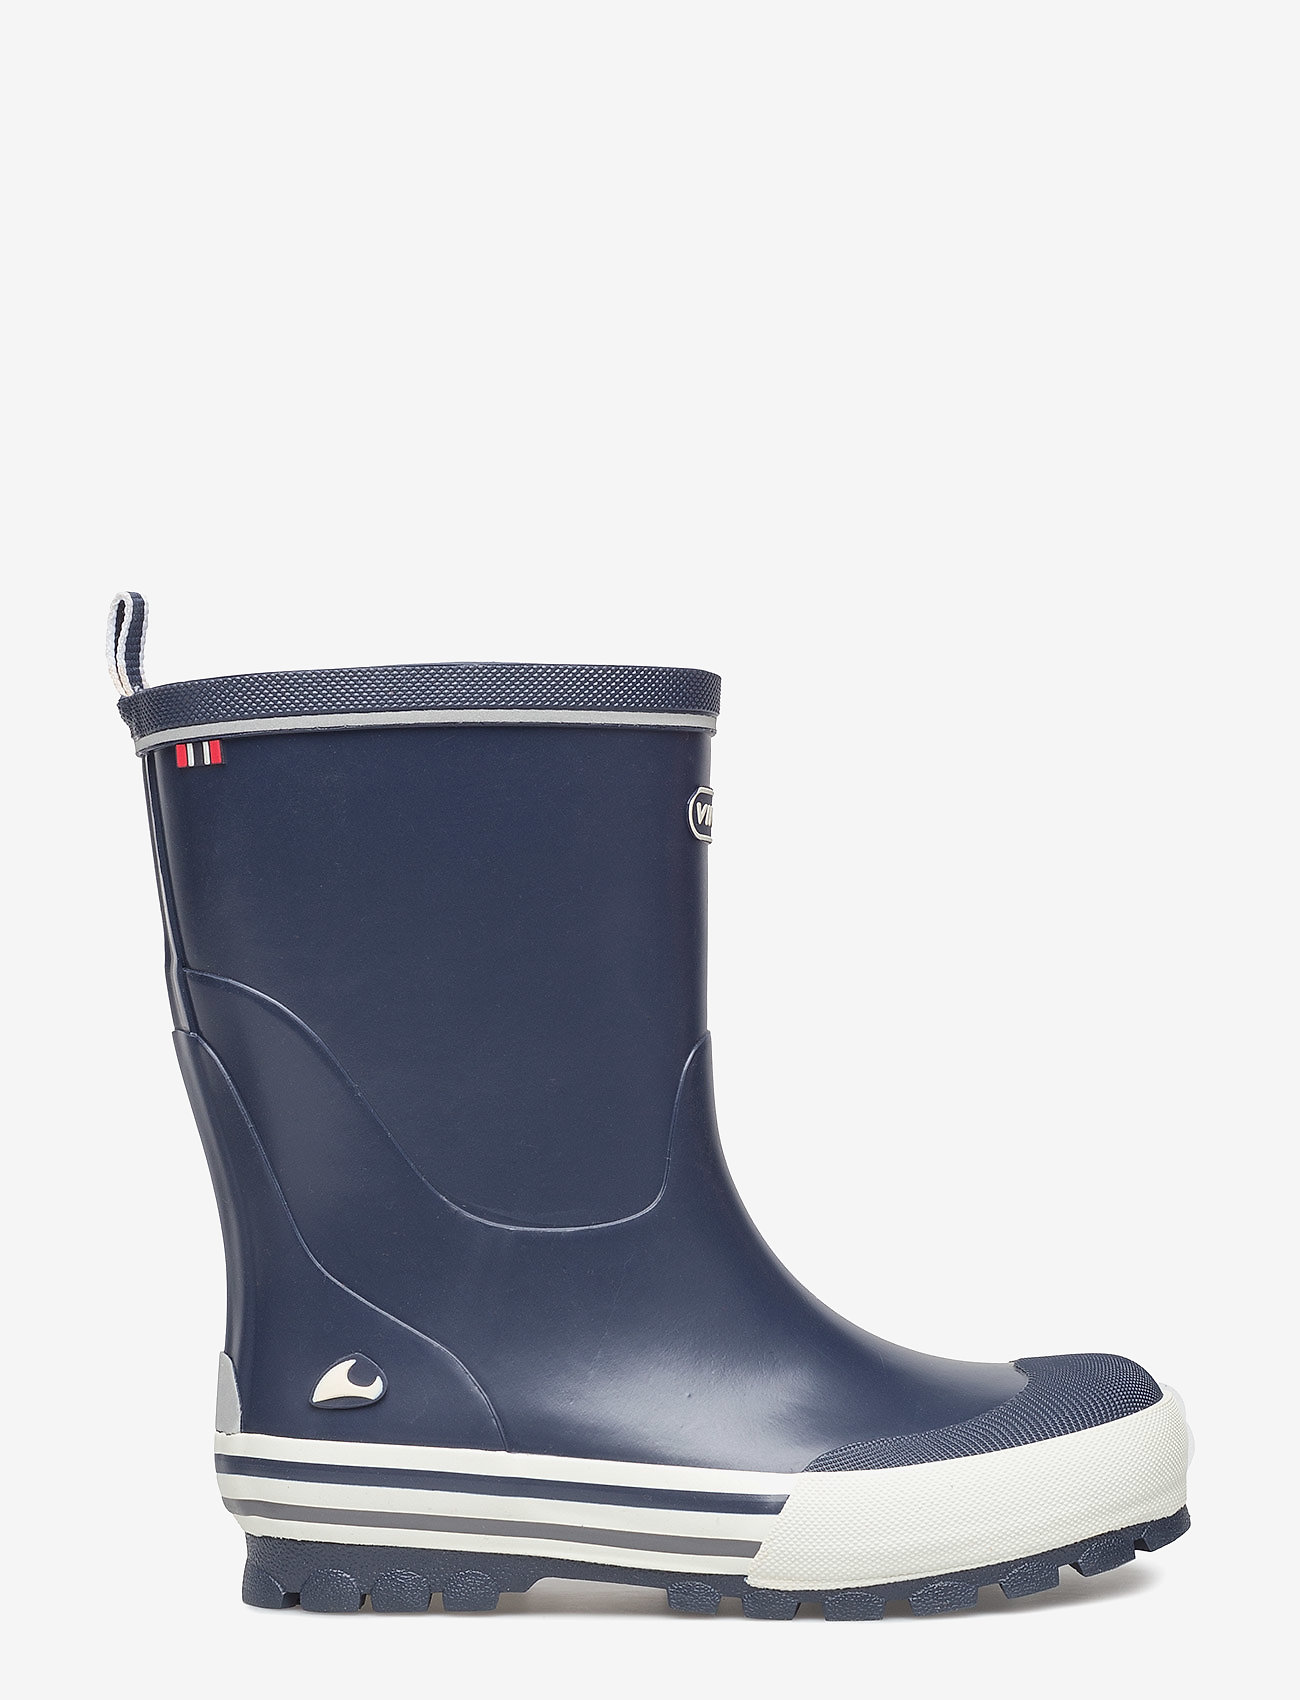 Viking - Jolly - unlined rubberboots - navy - 1